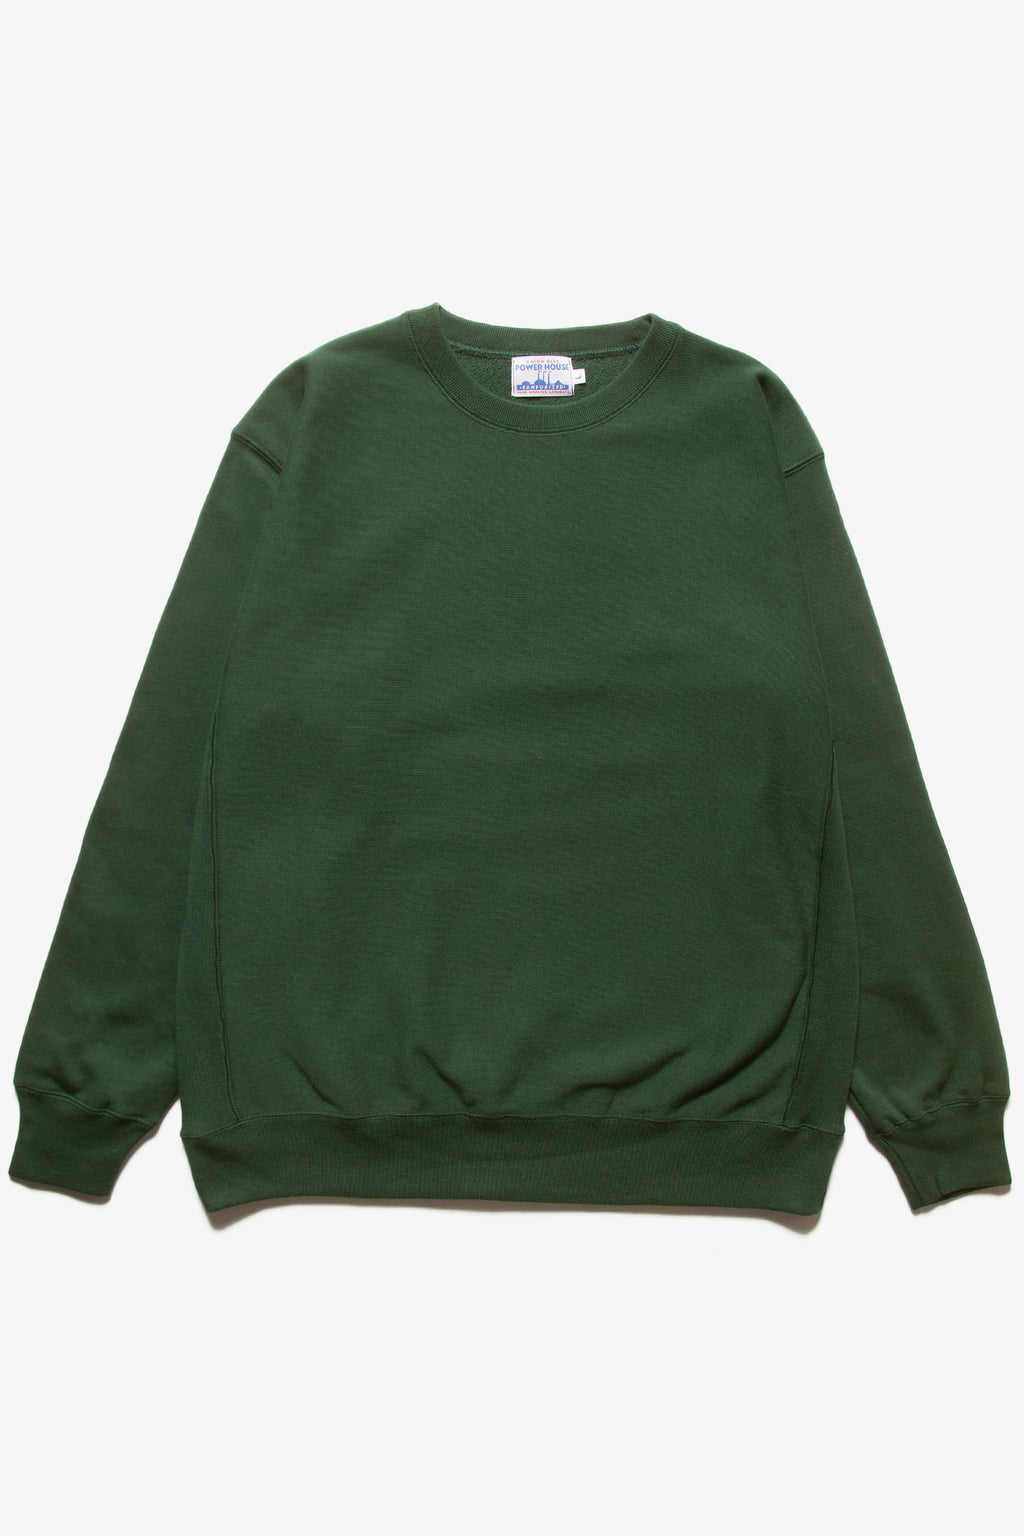 Power House - 12oz Crewneck - Forest Green